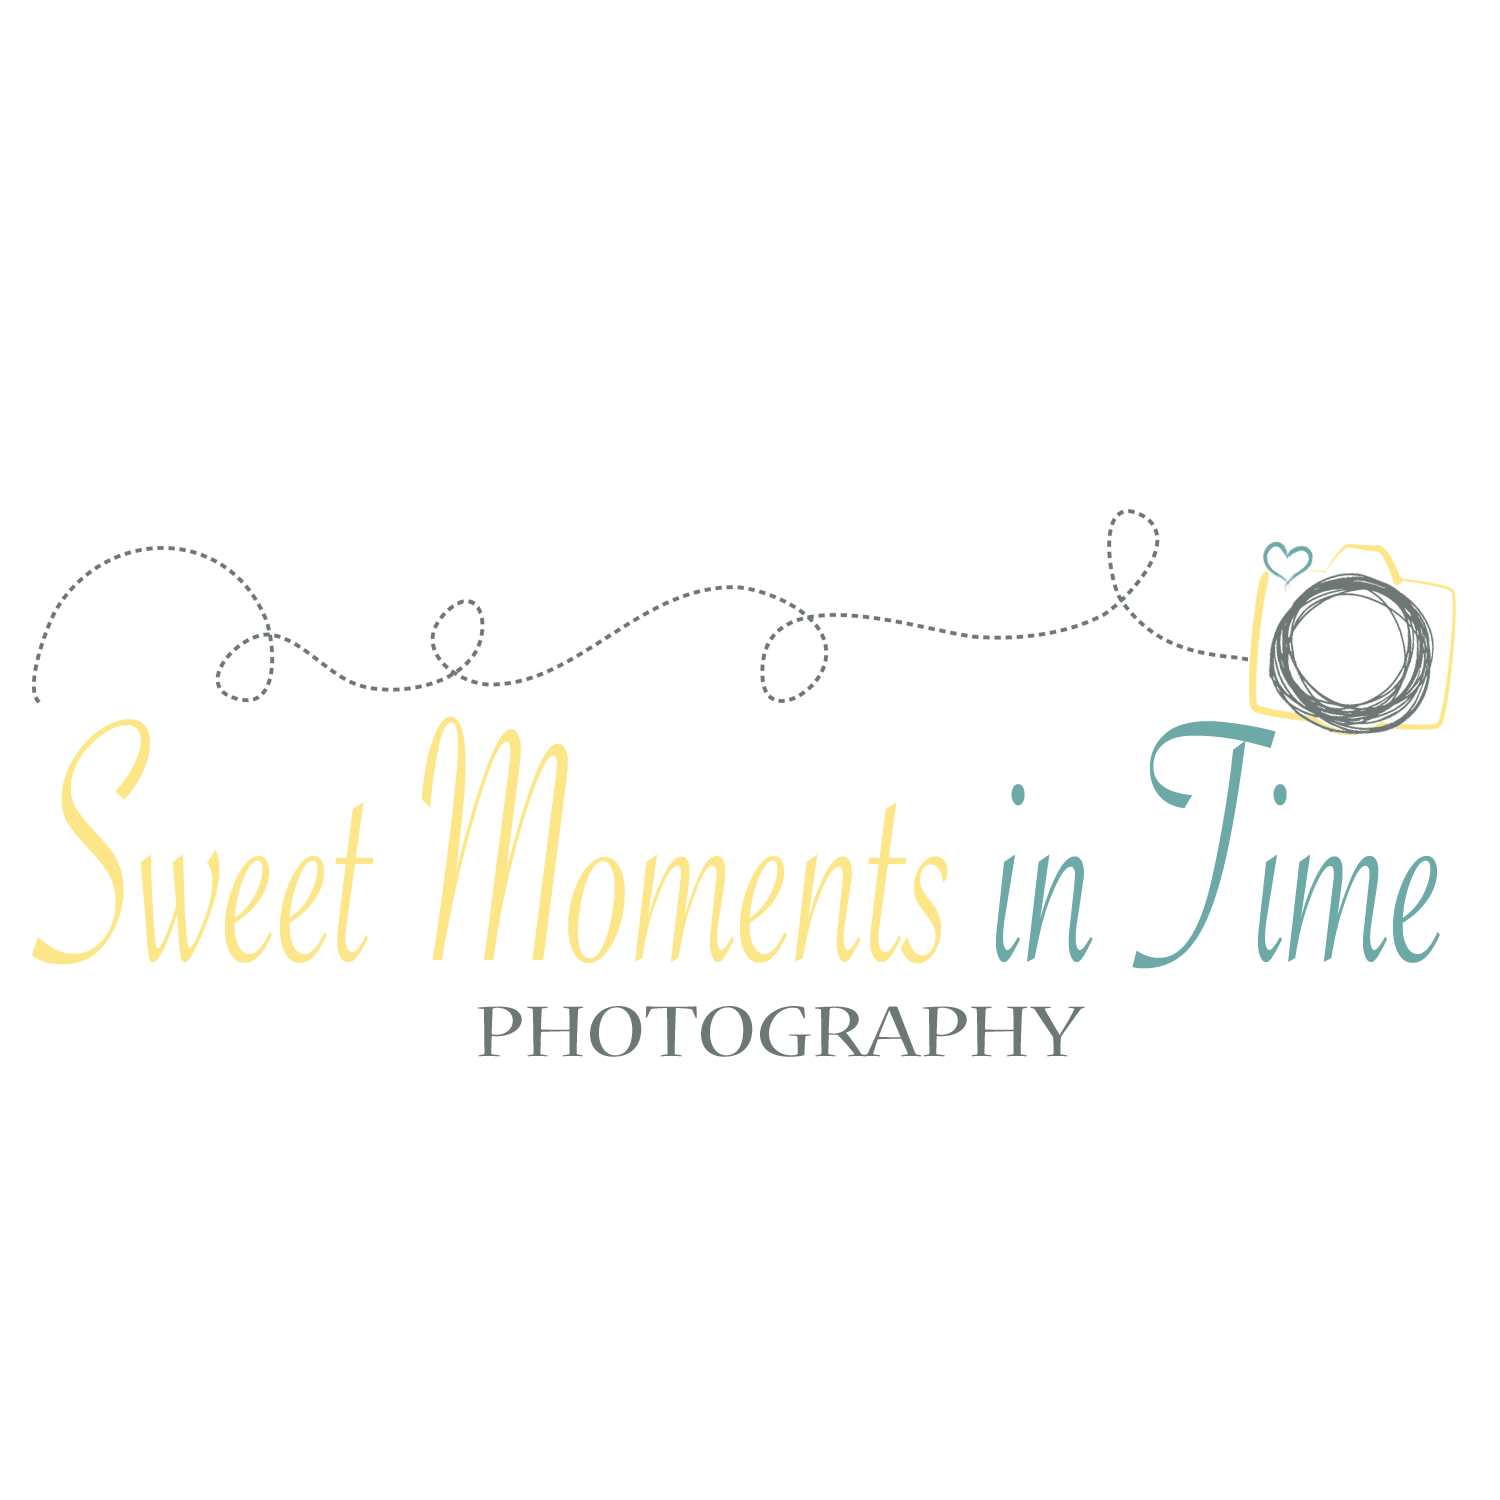 Sweet Moments in Time Photography